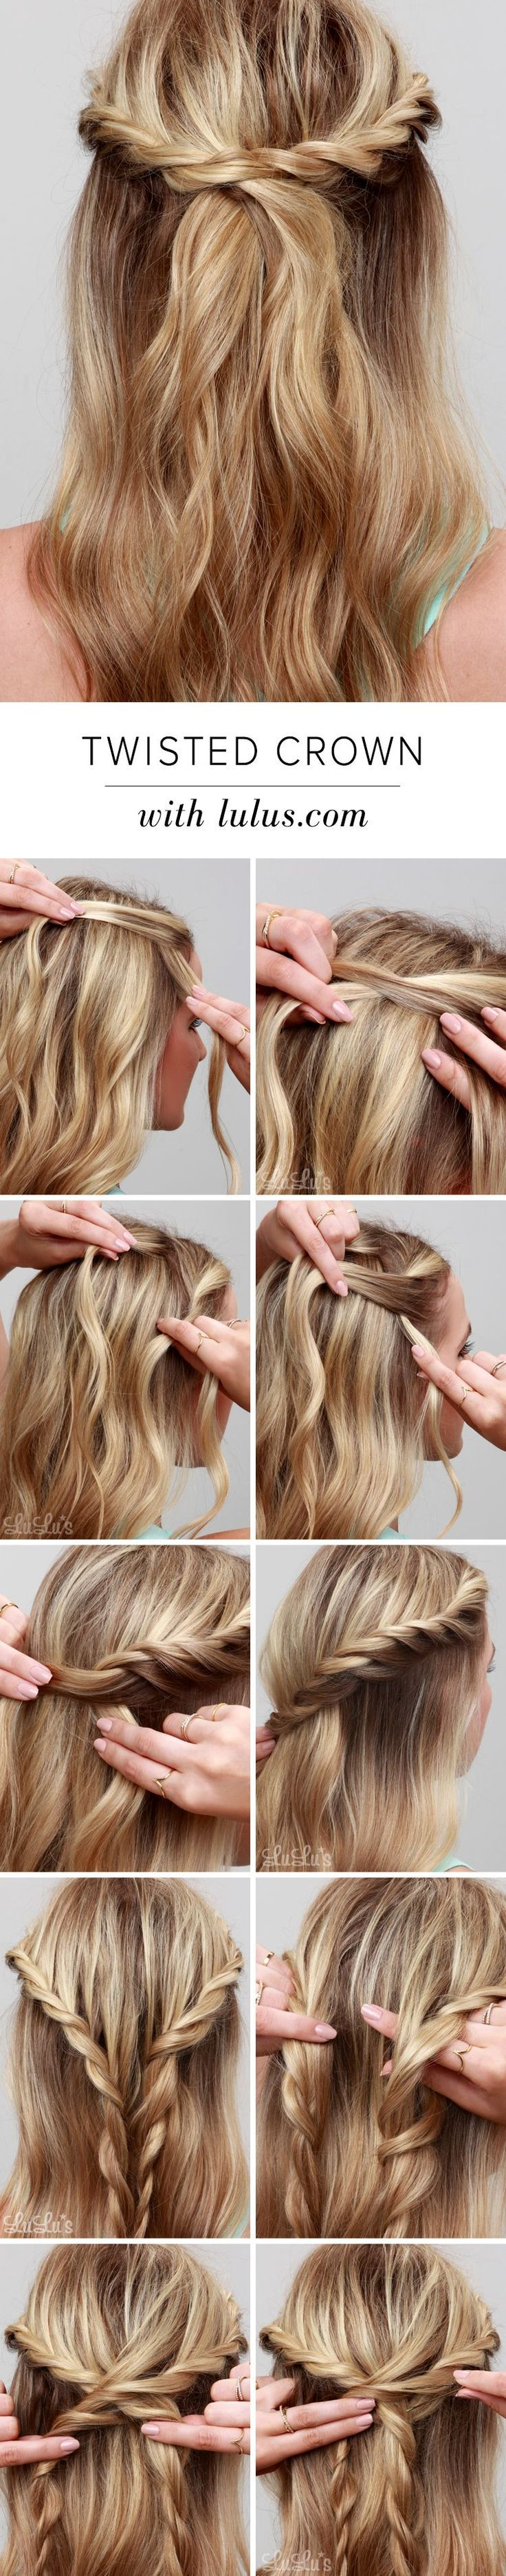 LuLu*s How-To: Twisted Crown Hair Tutorial